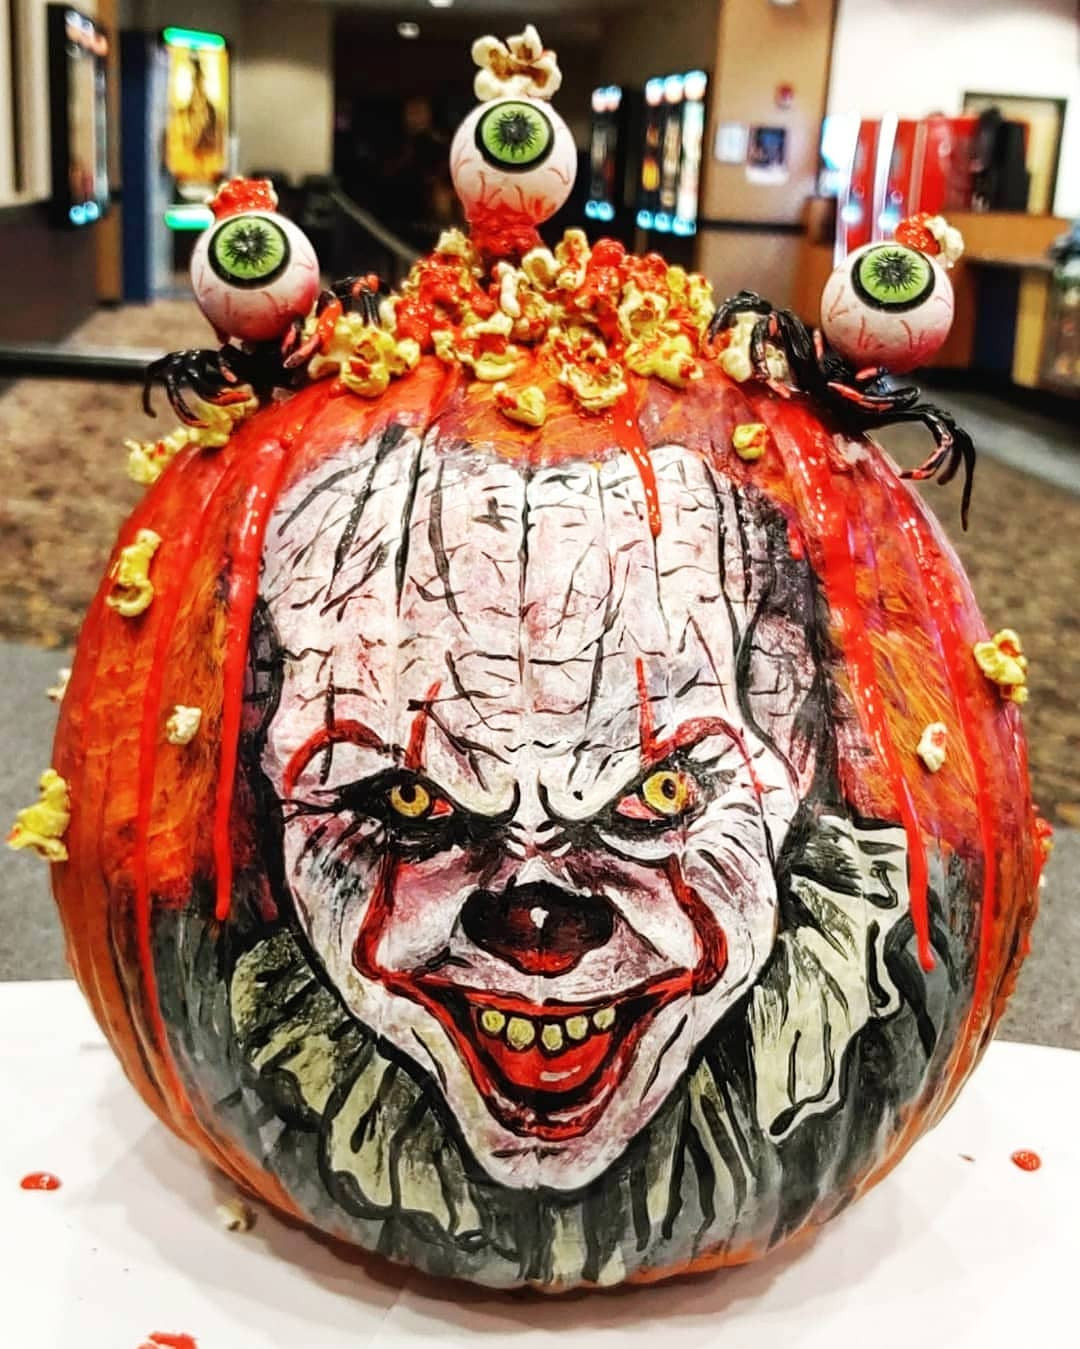 42 Easy Painted Pumpkins to DIY This Halloween,pumpkin painting stencils,pumpkin painting ideas 2020,pumpkin painting ideas 2019,mini pumpkin painting ideas